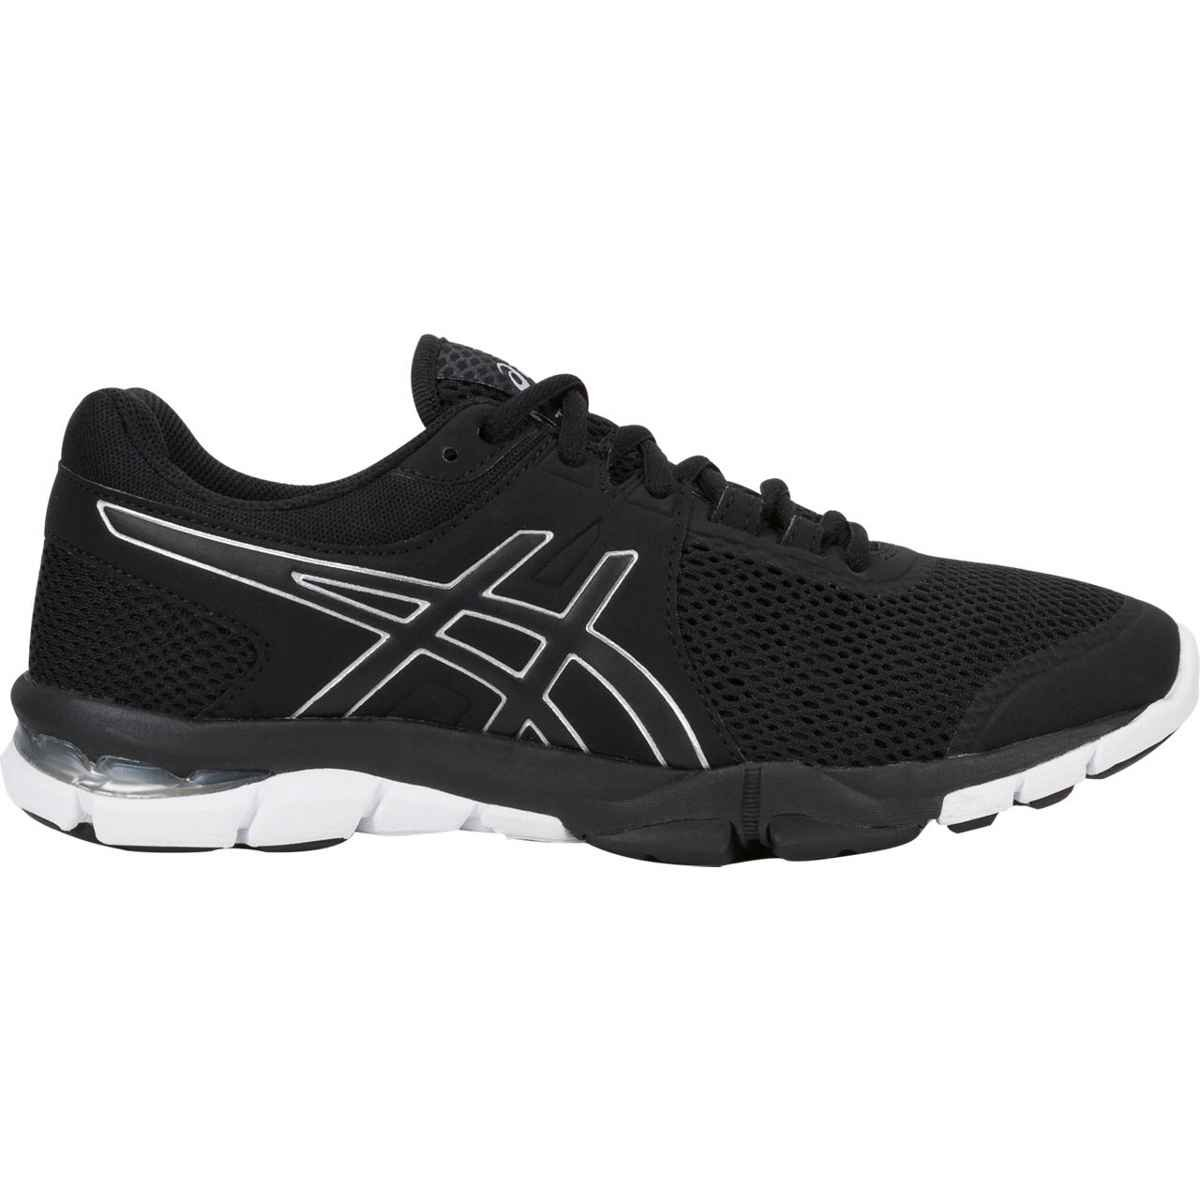 ASICS Women's Gel-Craze TR 4 Cross-Trainer Shoe B075F81DXS 5.5 B(M) US|Black/Silver/White